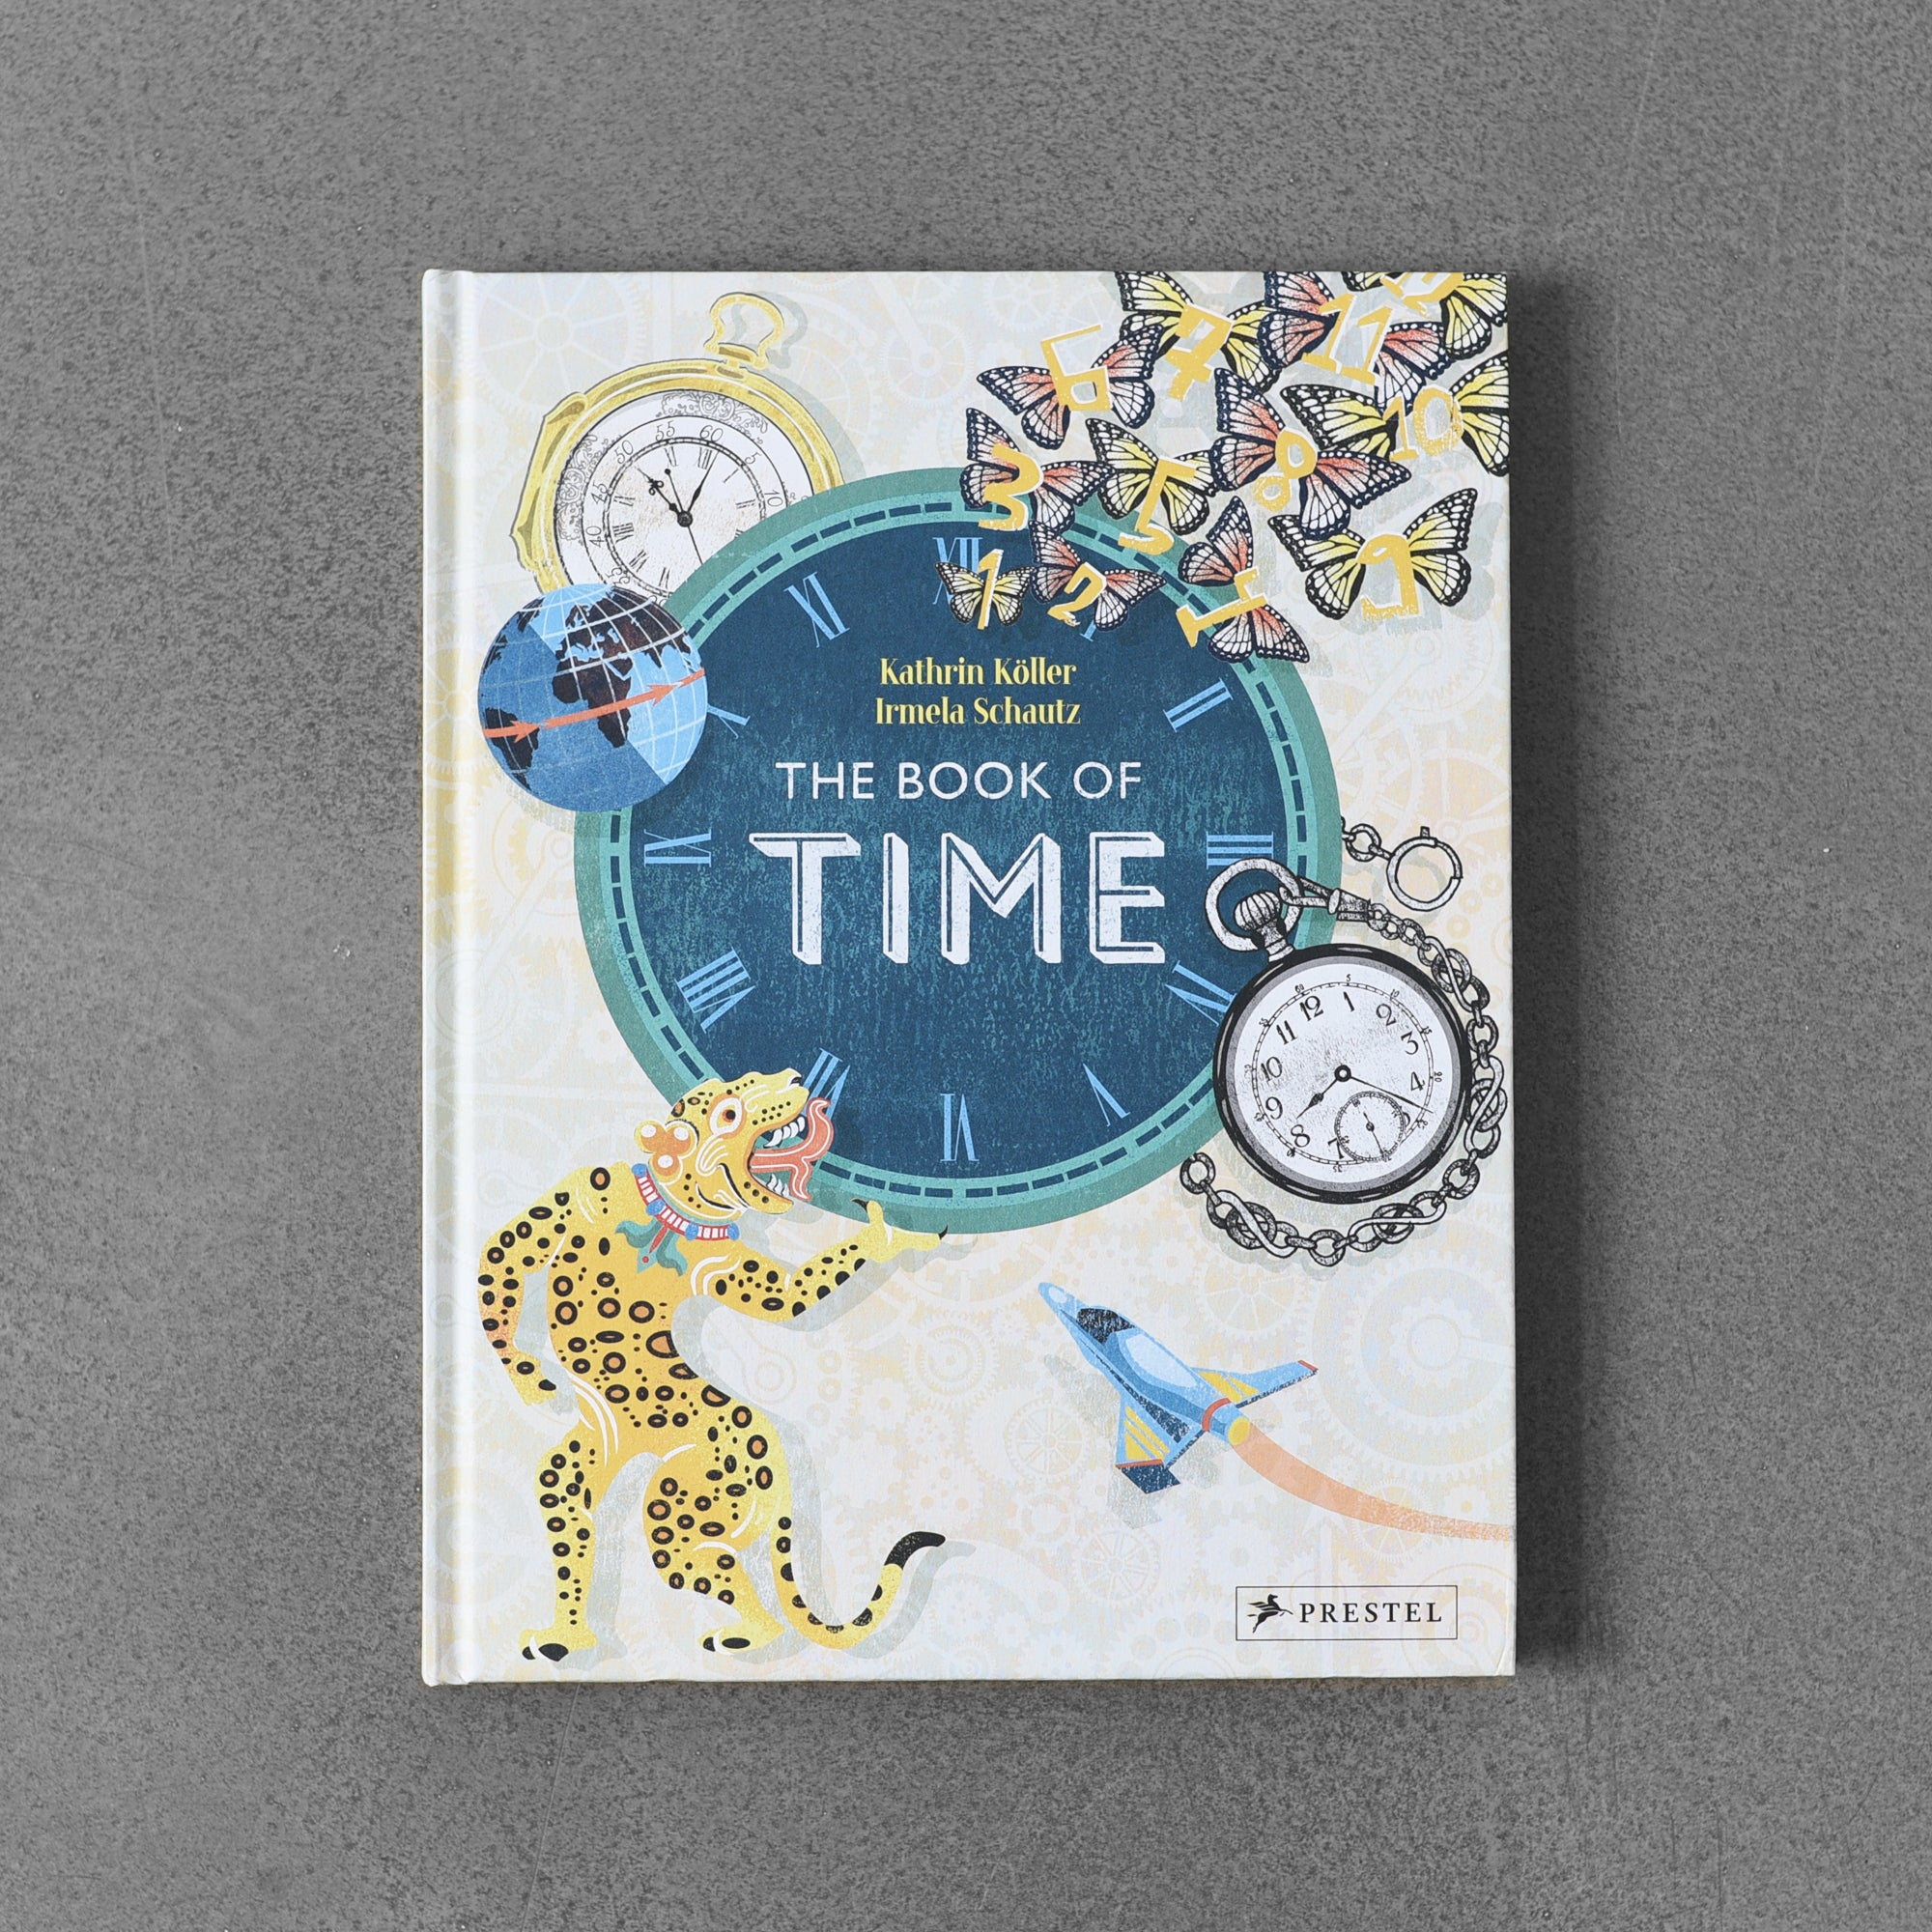 The Book of Time - Kathrin Köller, Irmela Schautz